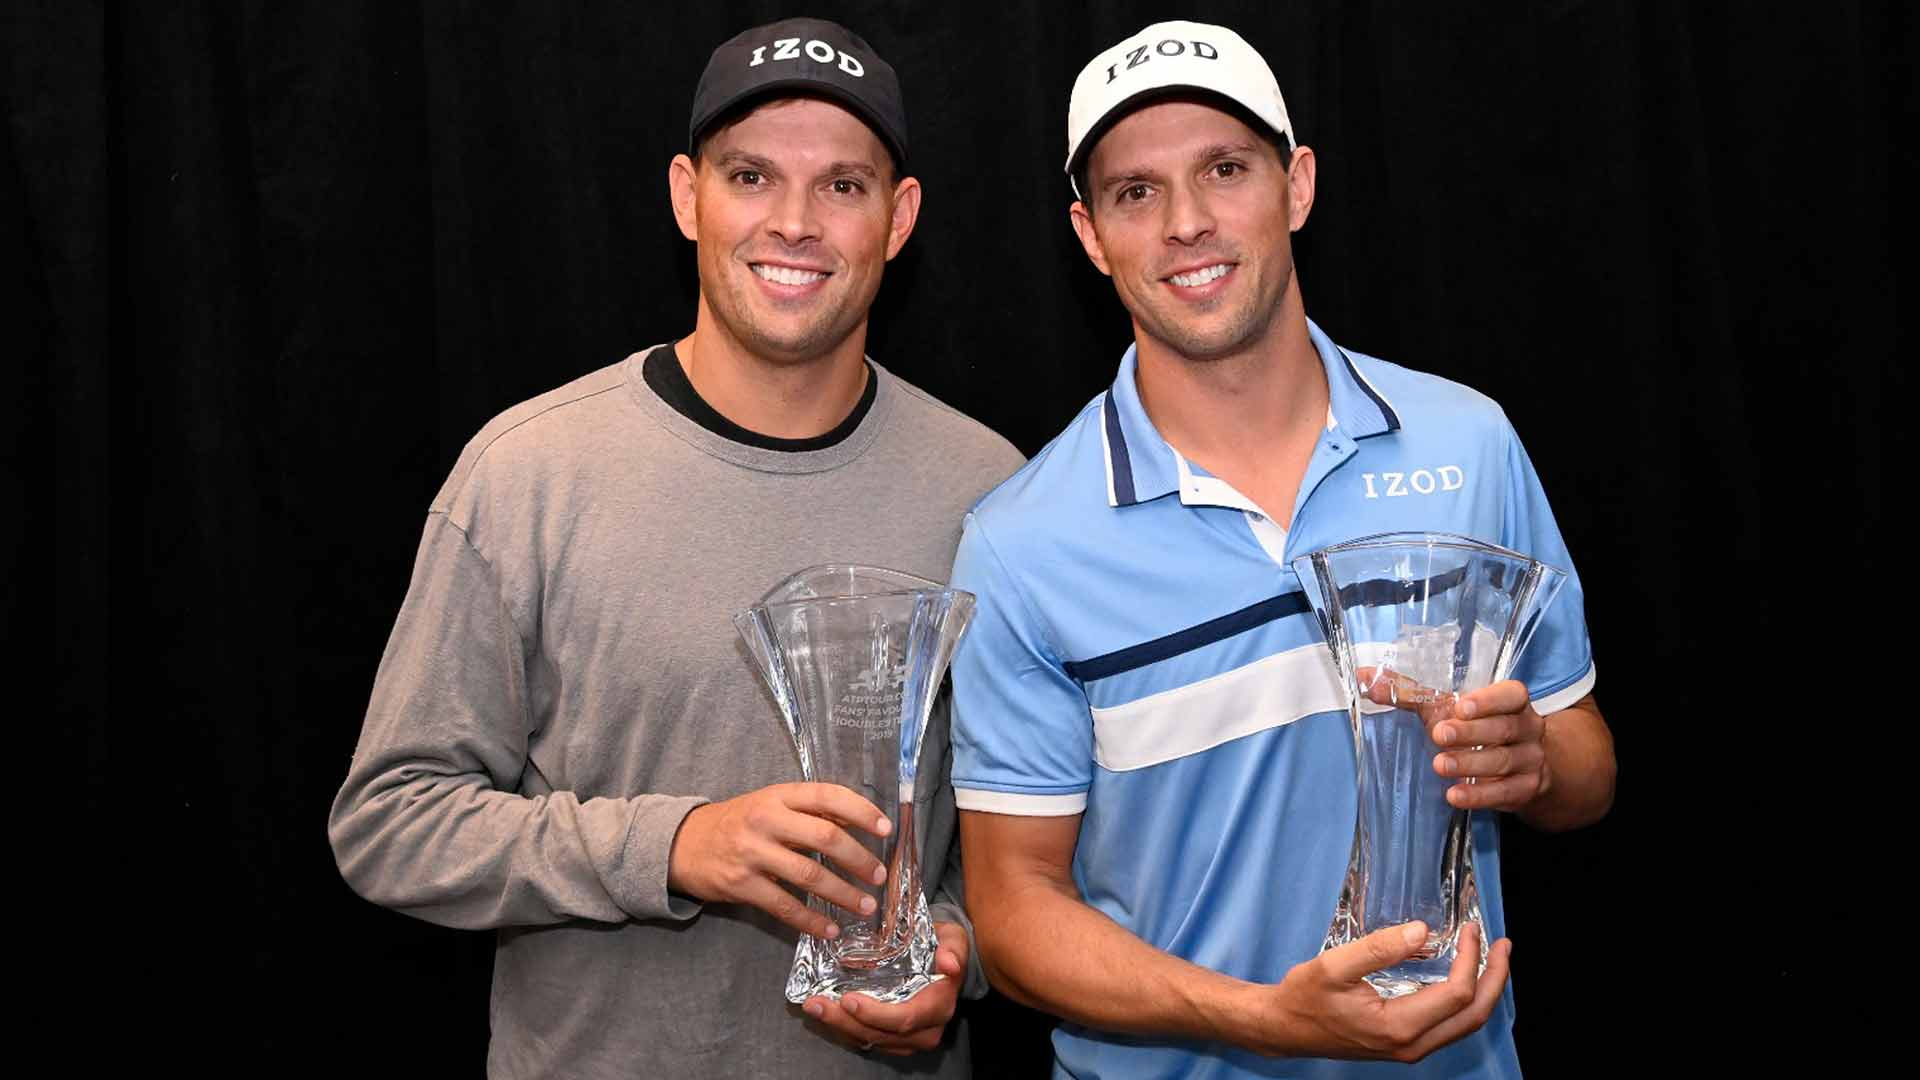 <a href='https://www.atptour.com/en/players/bob-bryan/b588/overview'>Bob Bryan</a>/<a href='https://www.atptour.com/en/players/mike-bryan/b589/overview'>Mike Bryan</a> <a href='https://www.atptour.com/en/players/bob-bryan/b588/overview'>Bob Bryan</a> receive the ATPTour.com Fans' Favourite (doubles) award on Sunday in Melbourne.